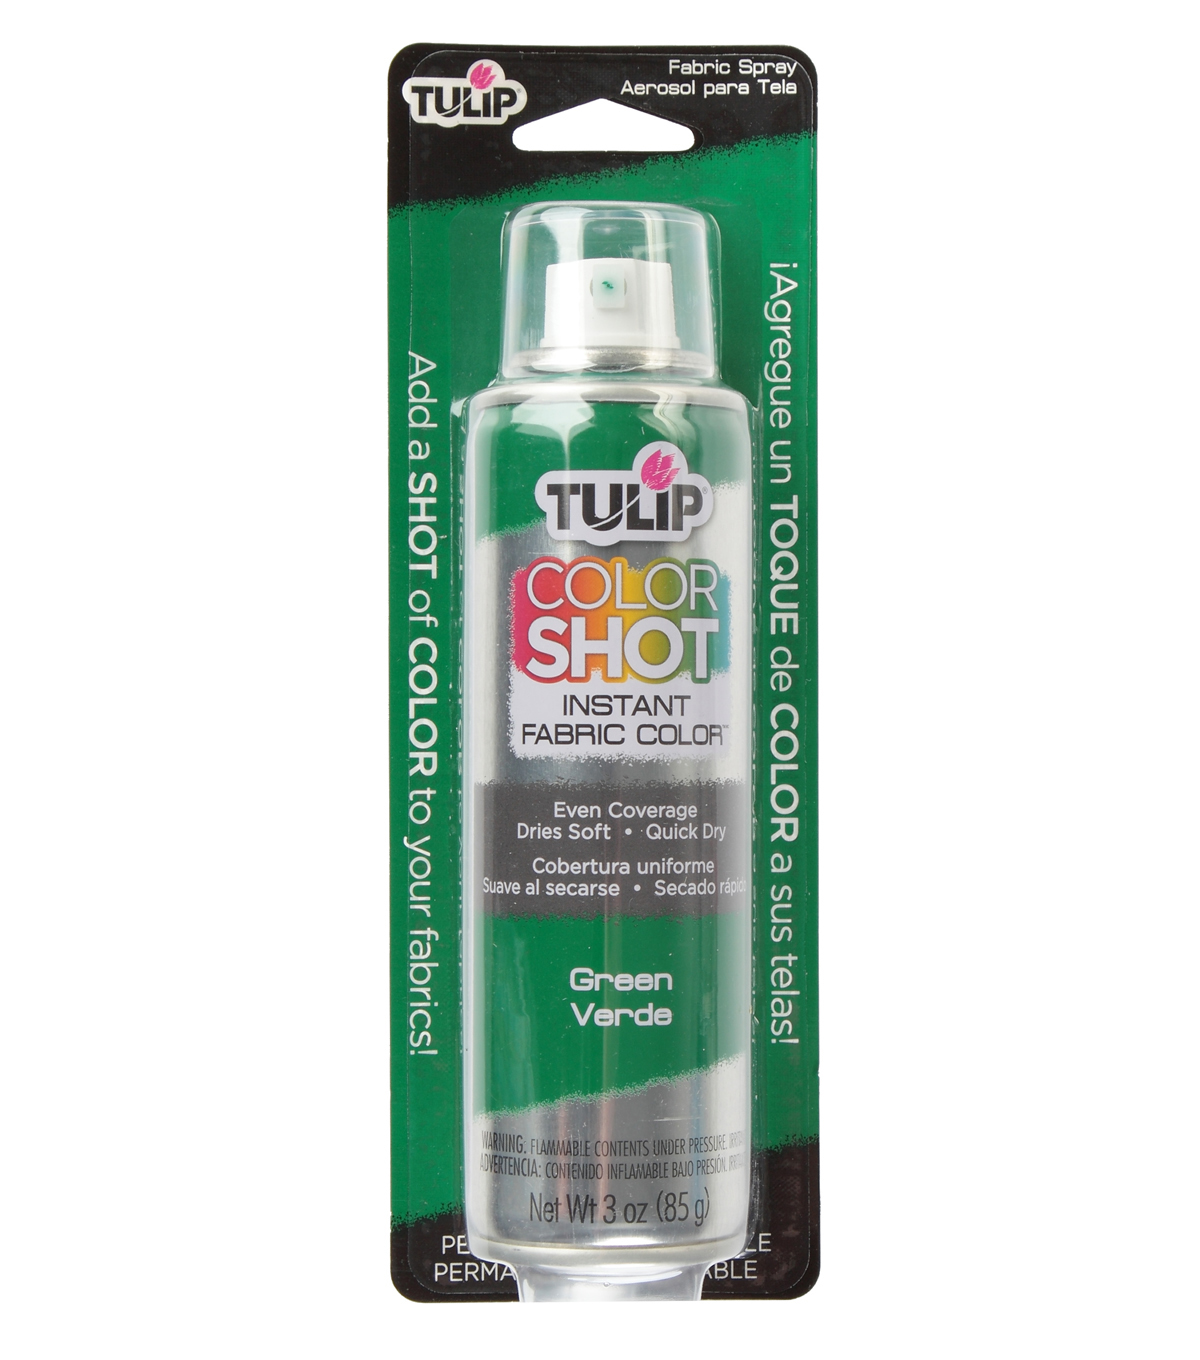 Tulip ColorShot Instant Fabric Color Spray 3oz, Green